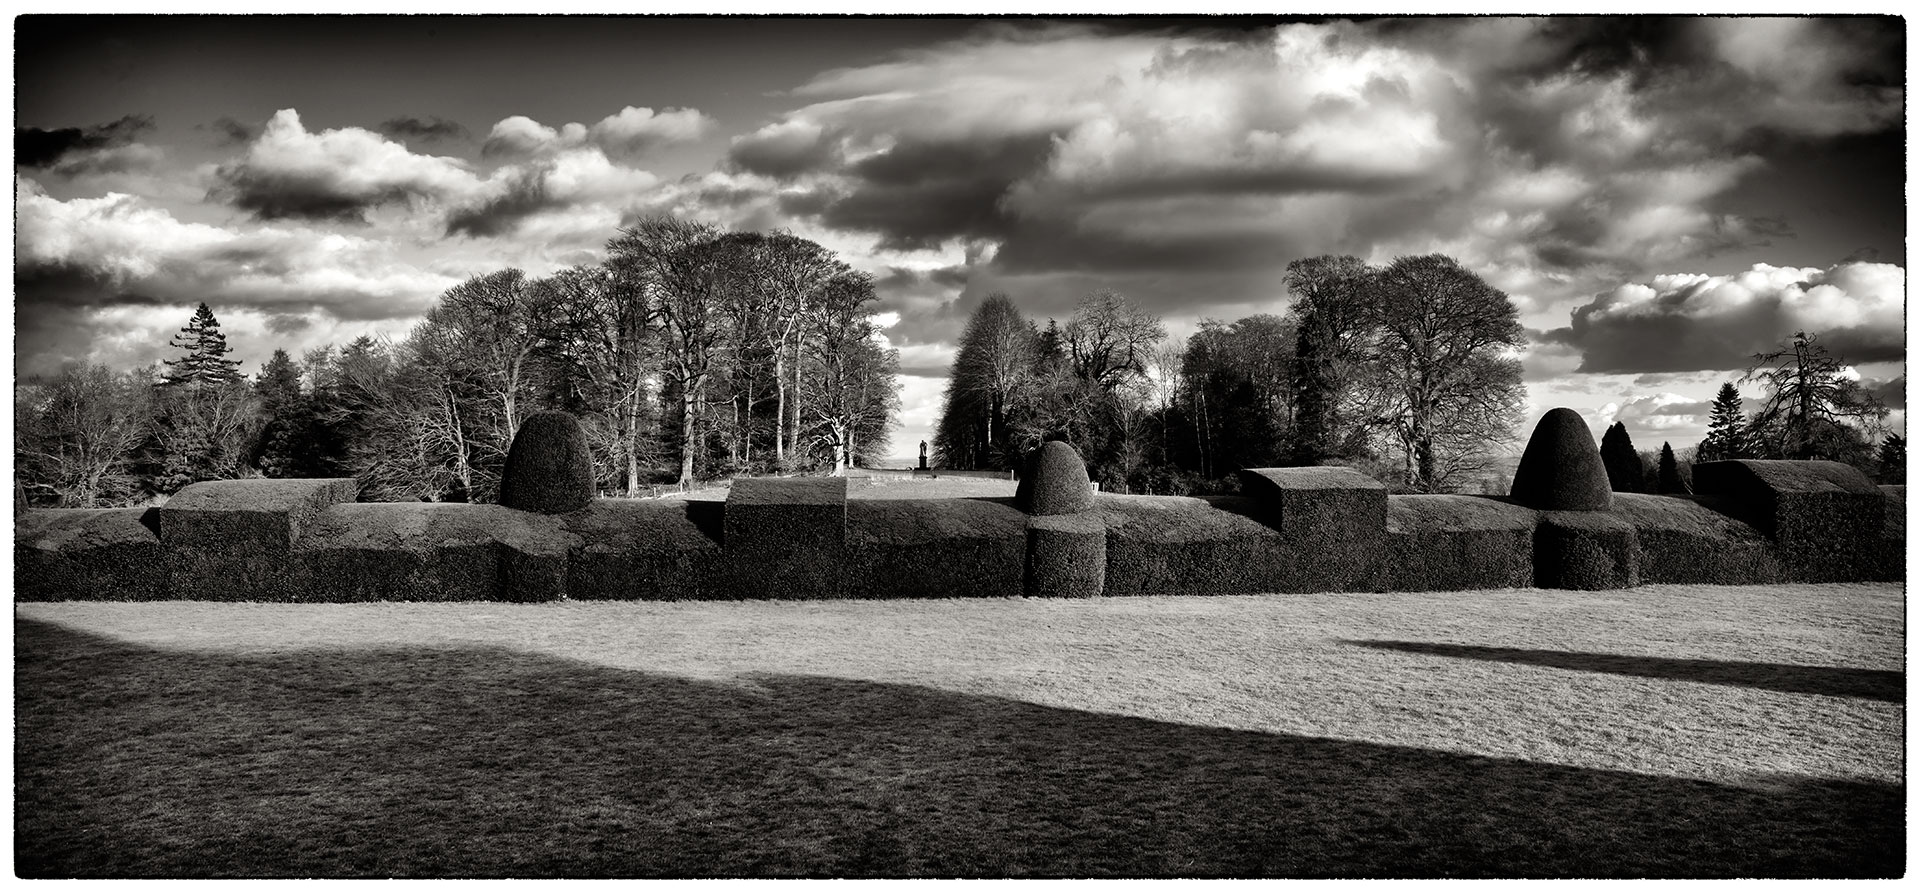 More topiary and long shadows at Chirk Castle.